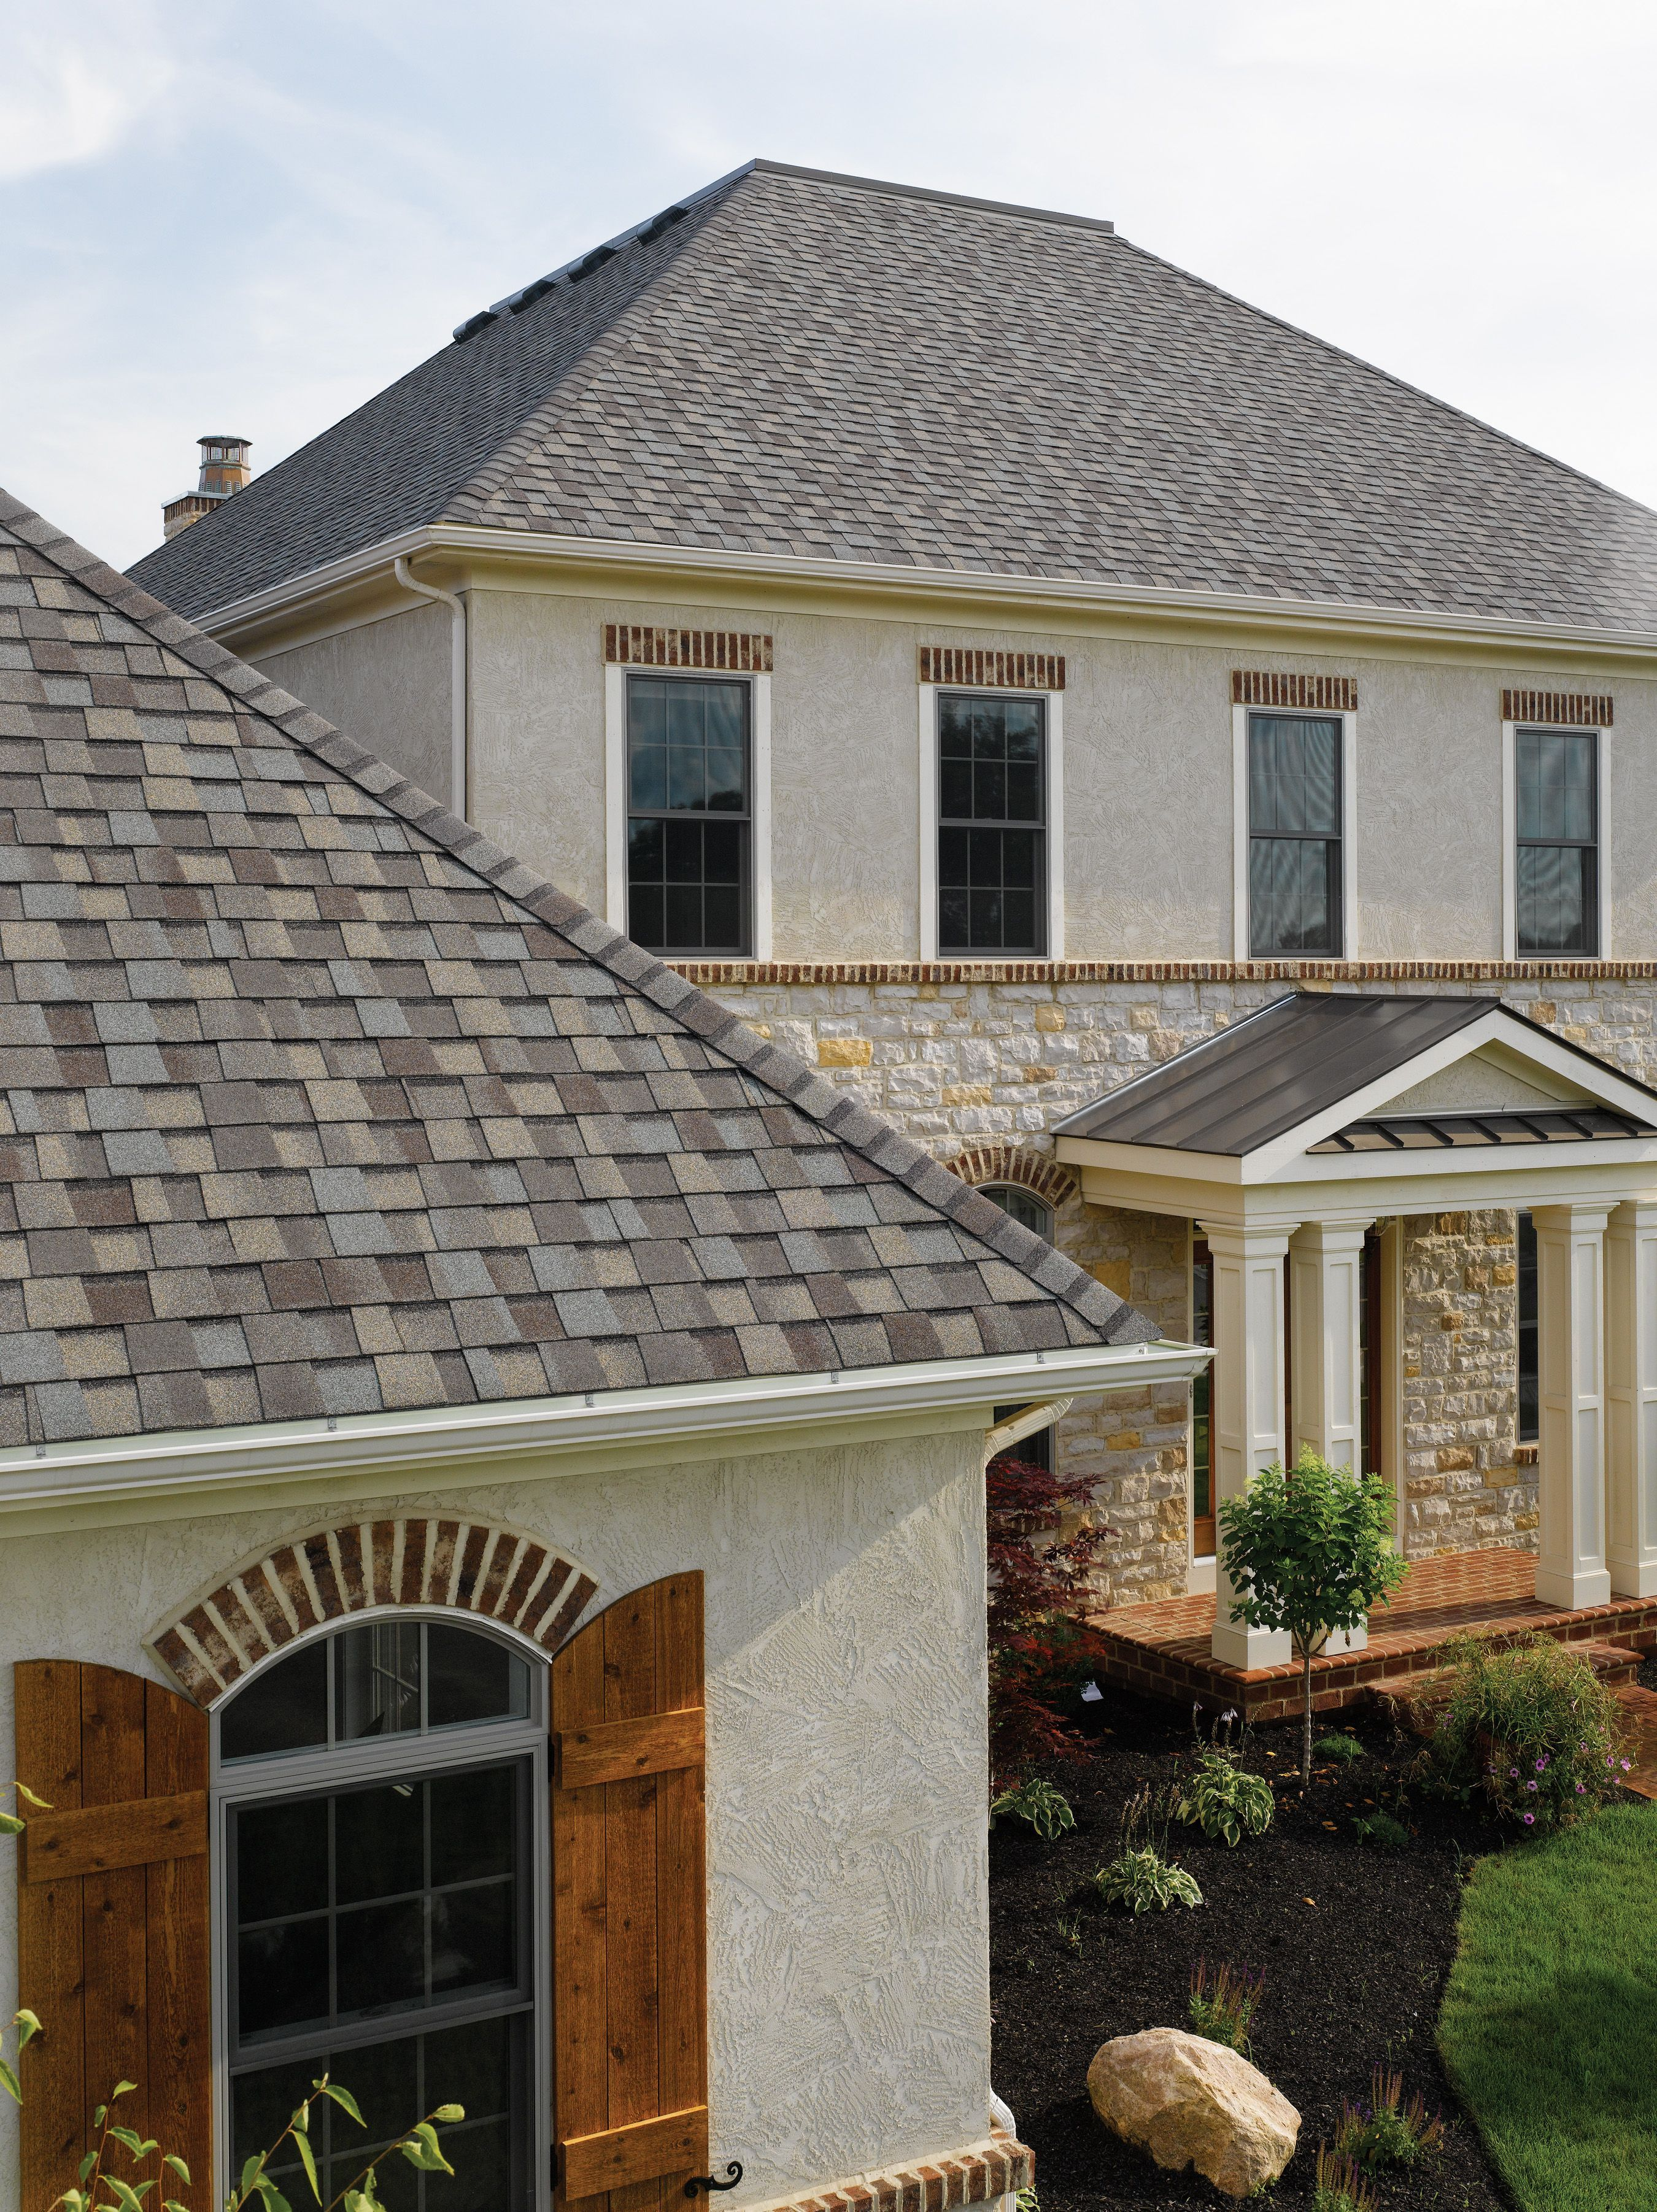 10 Delicious Roofing Garden Wall Ideas In 2019 Roof Shingles